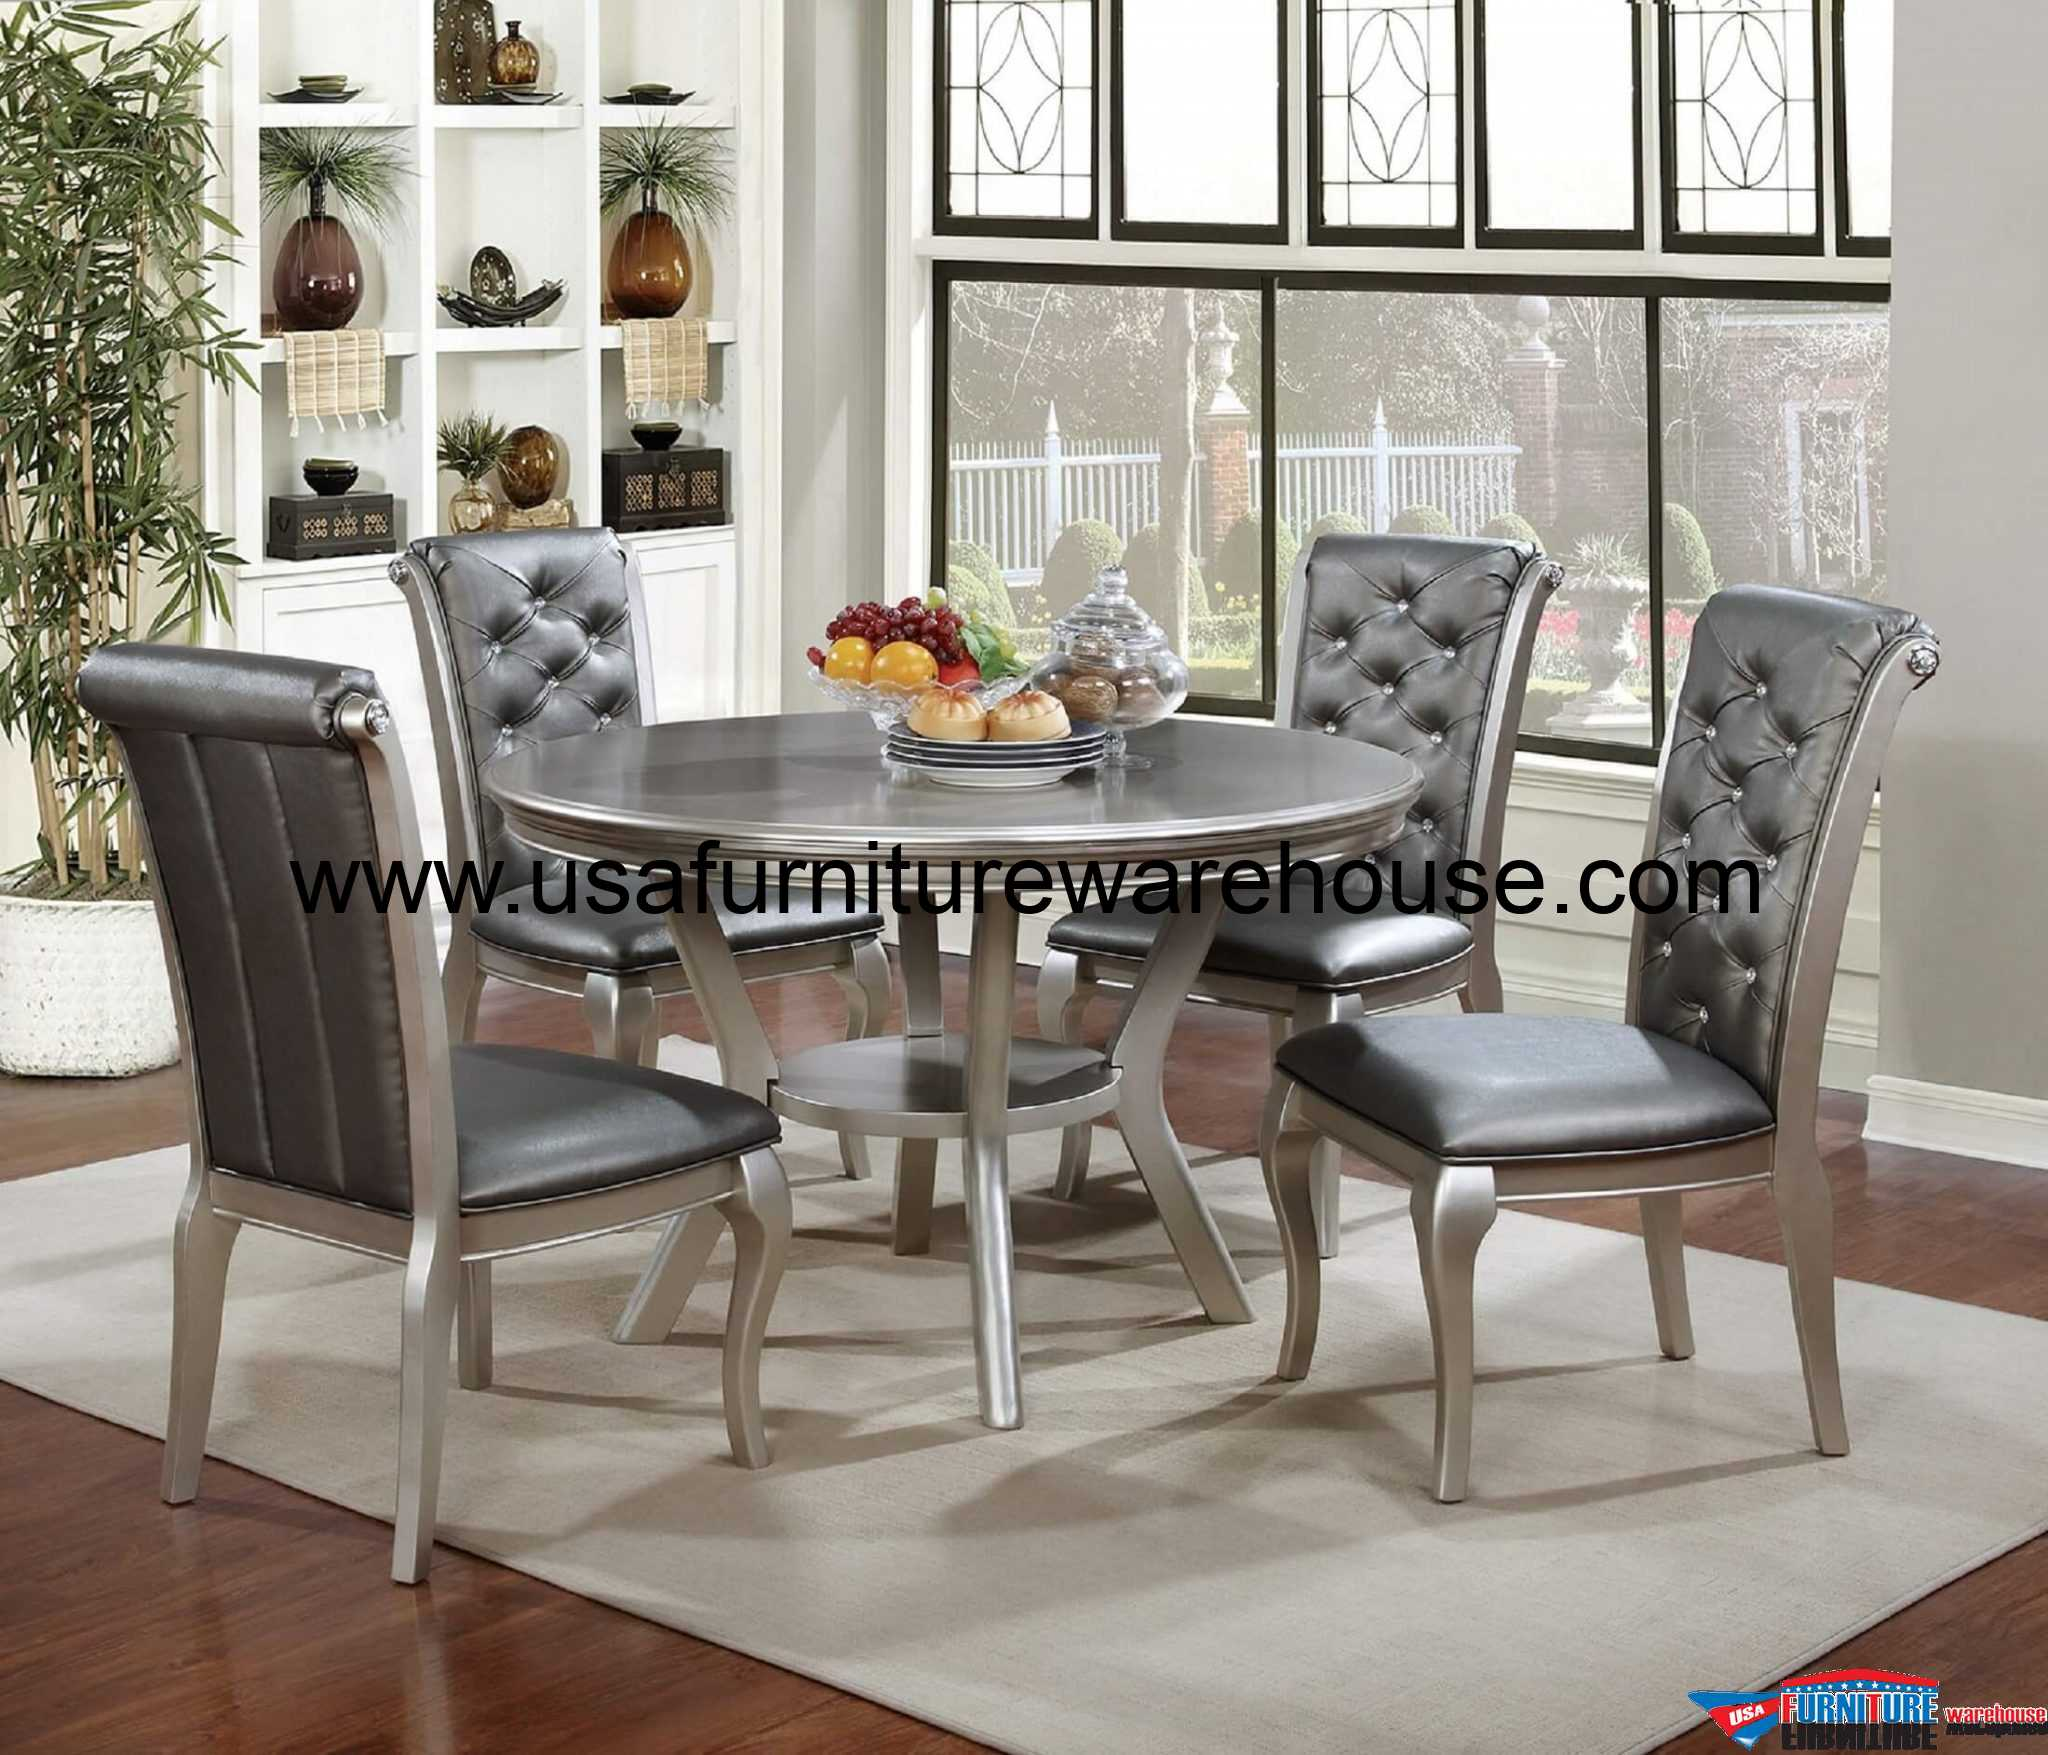 Amina Silver Contemporary Dining Set : 5 Piece Amina Silver Round Dining Set from www.usafurniturewarehouse.com size 2200 x 1885 jpeg 678kB